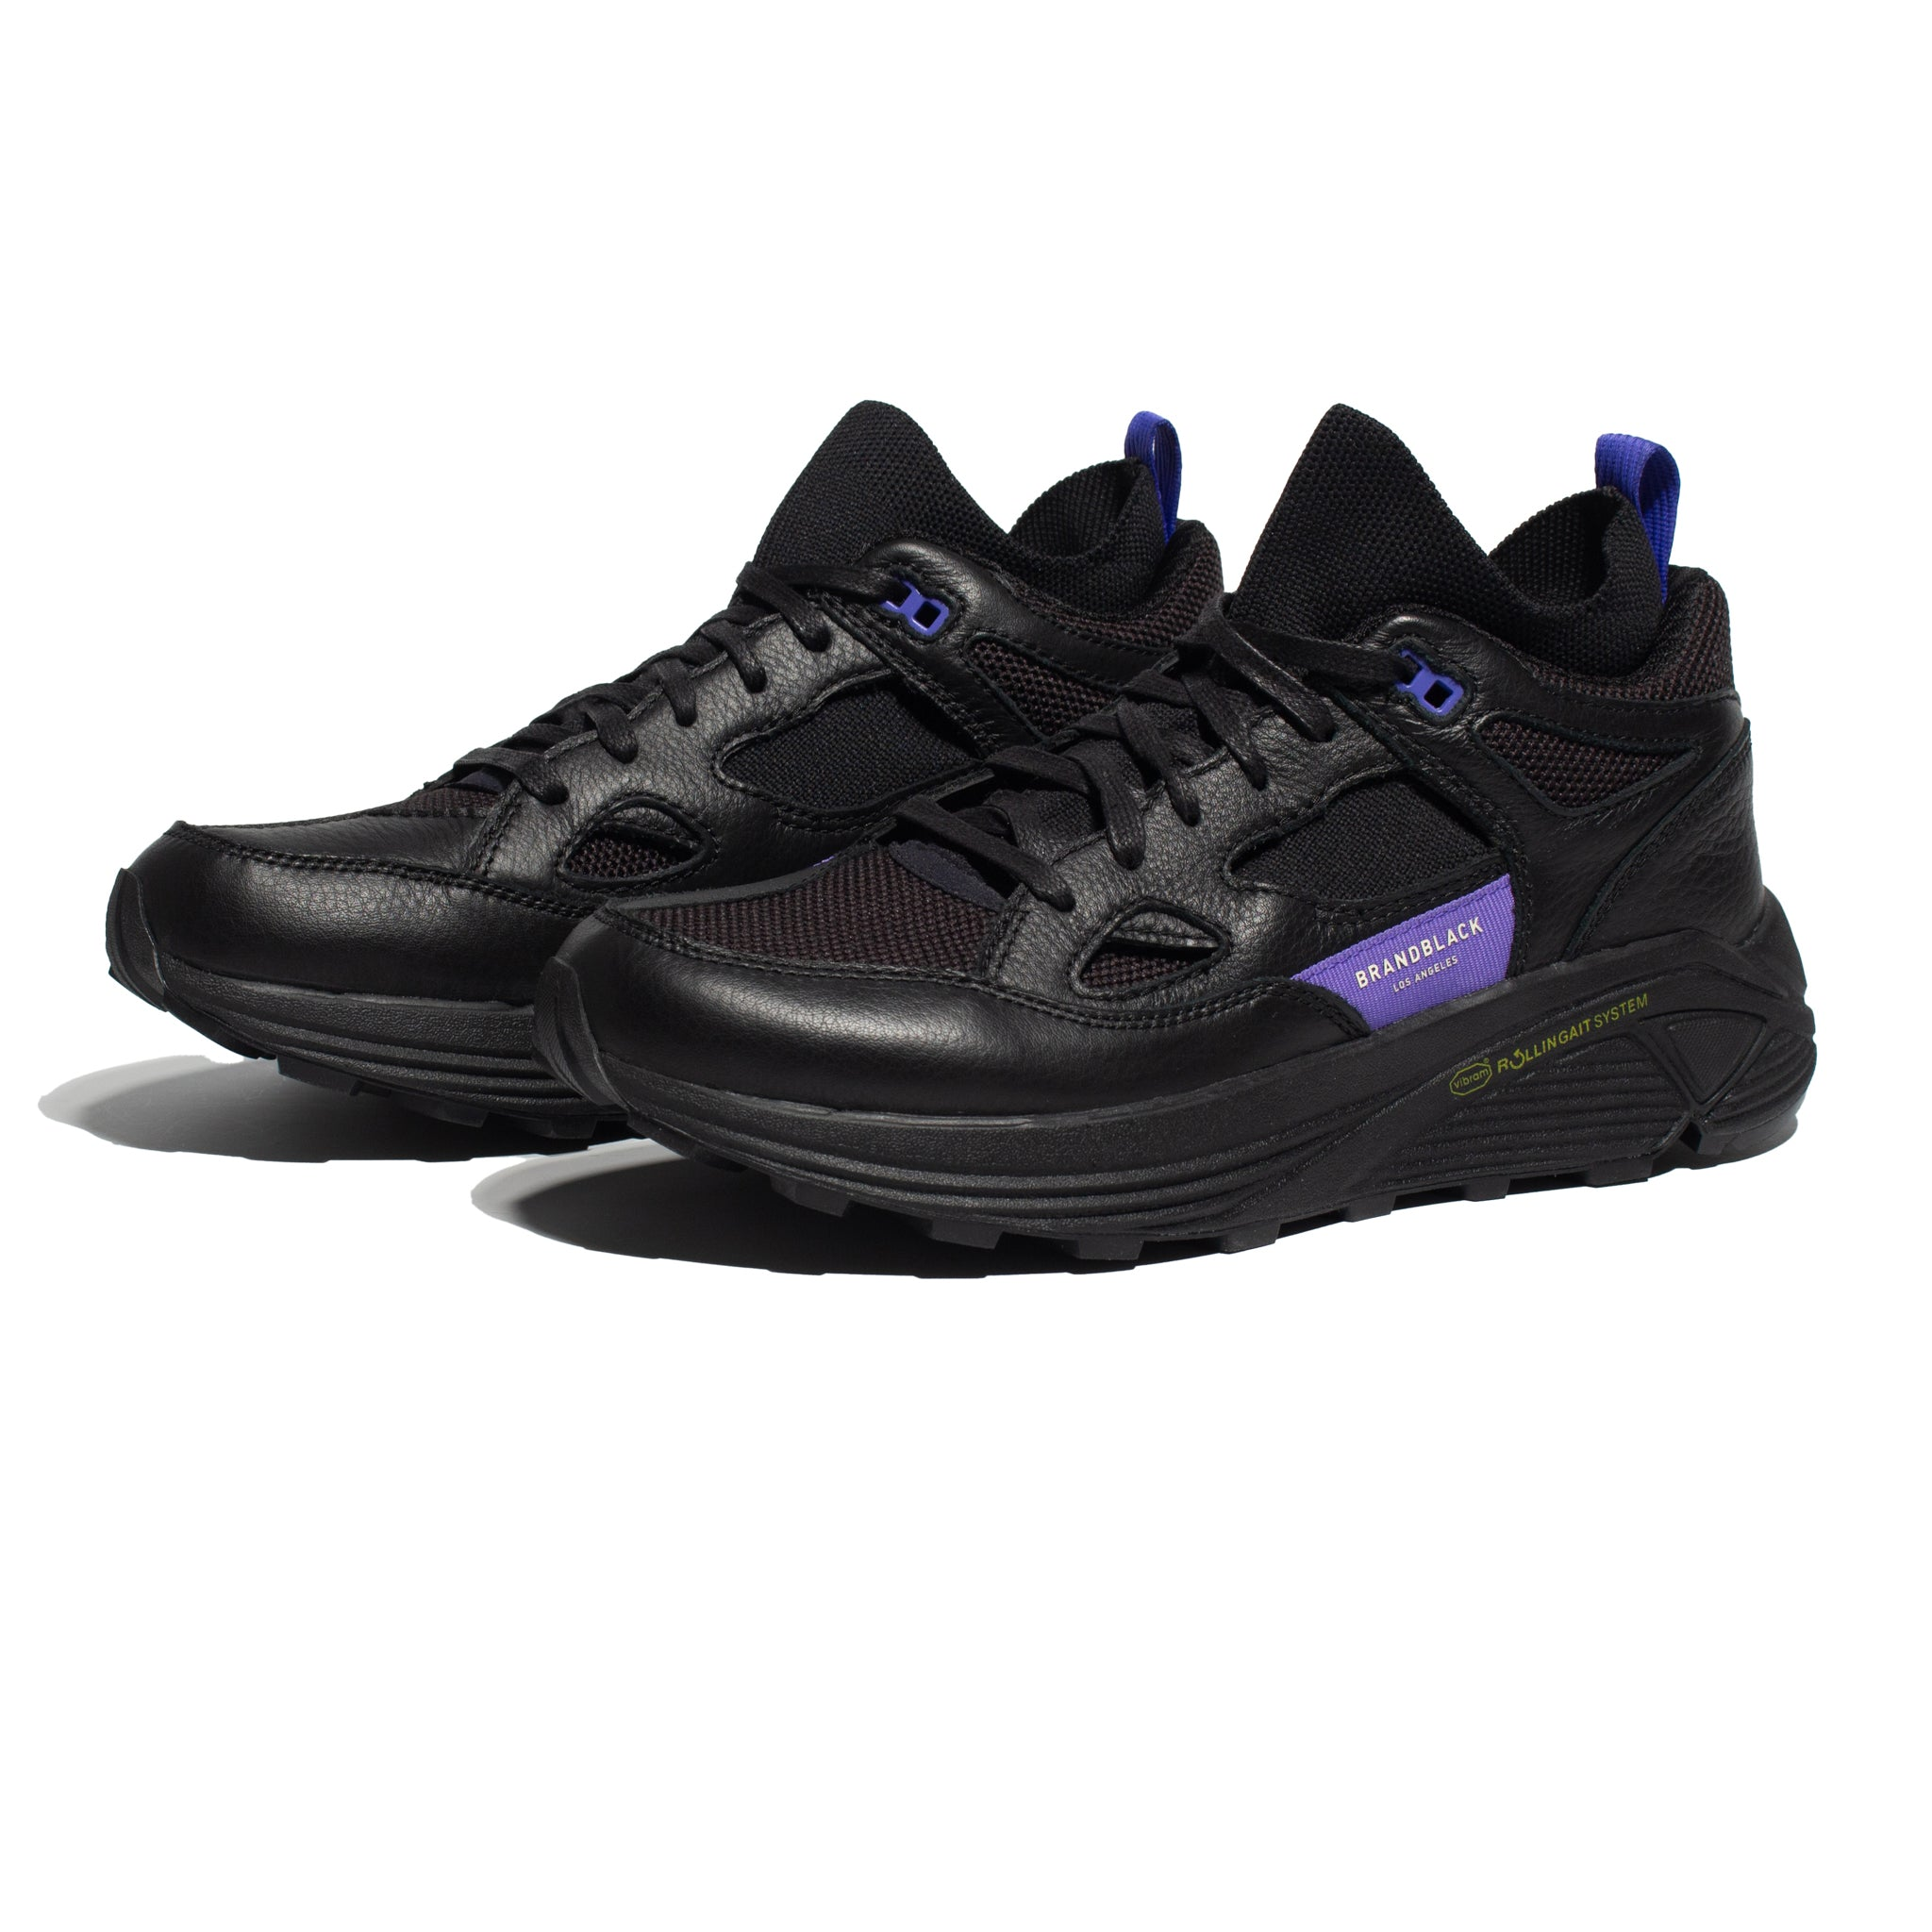 Brandblack Aura Black/Purple